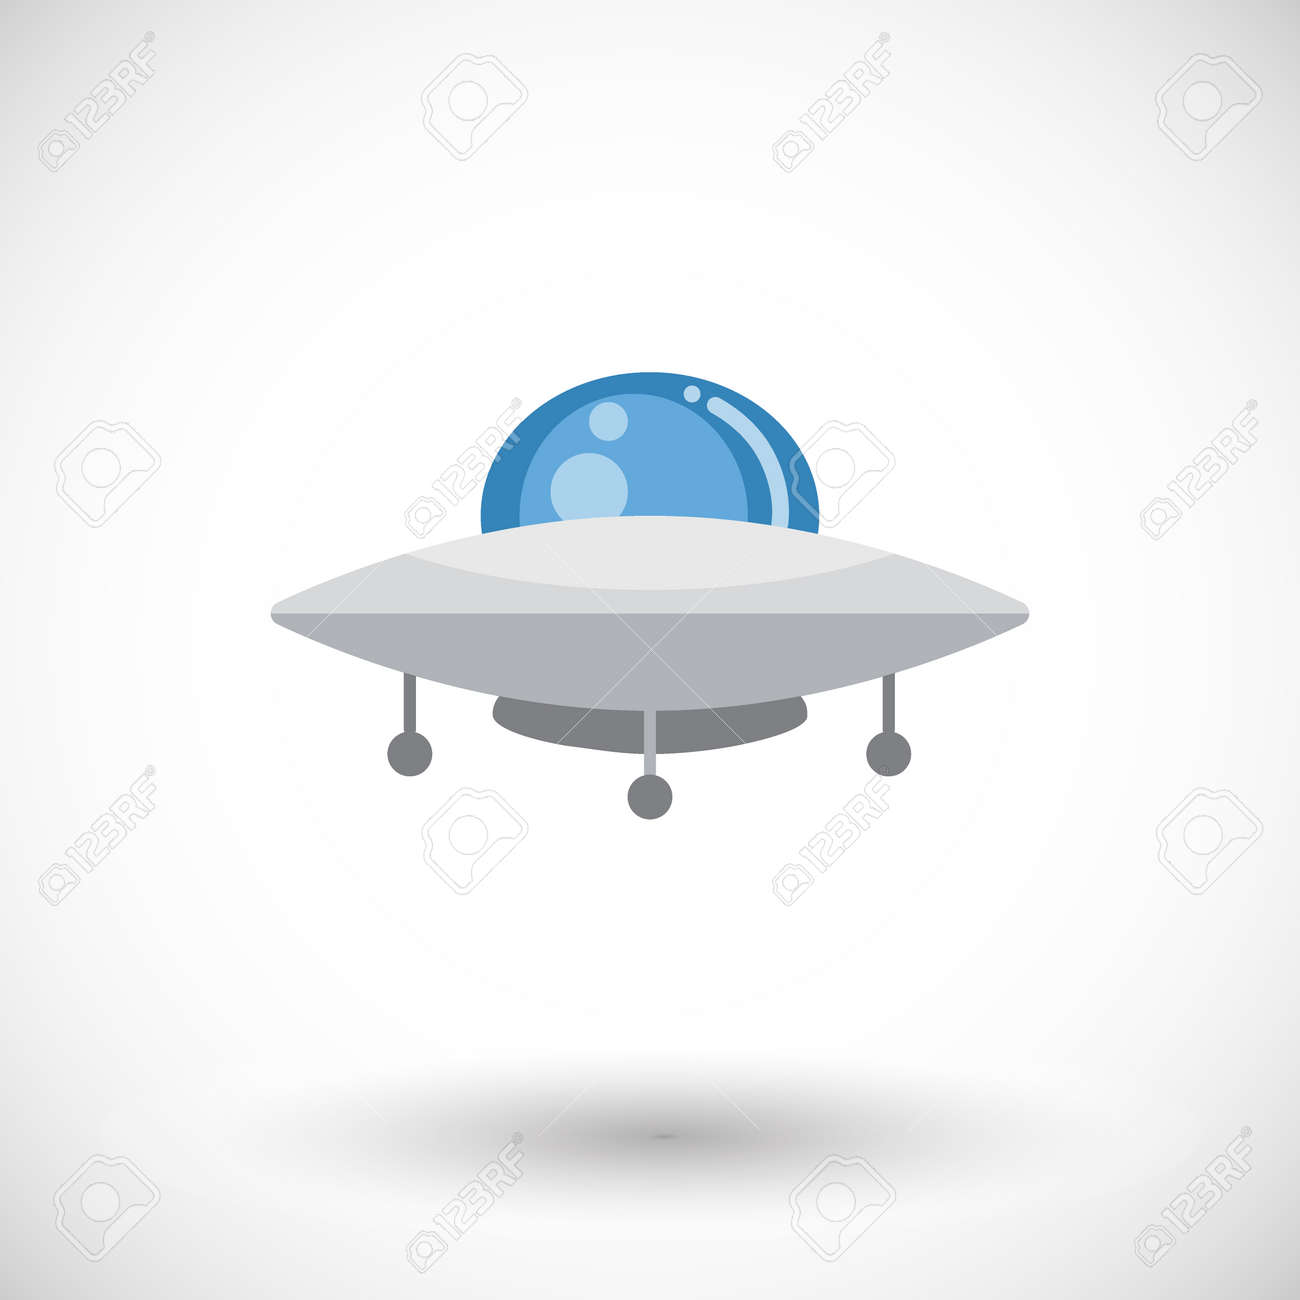 Ufo Icon Flat Design Of Shiny Alien Spaceship With Round Shadow